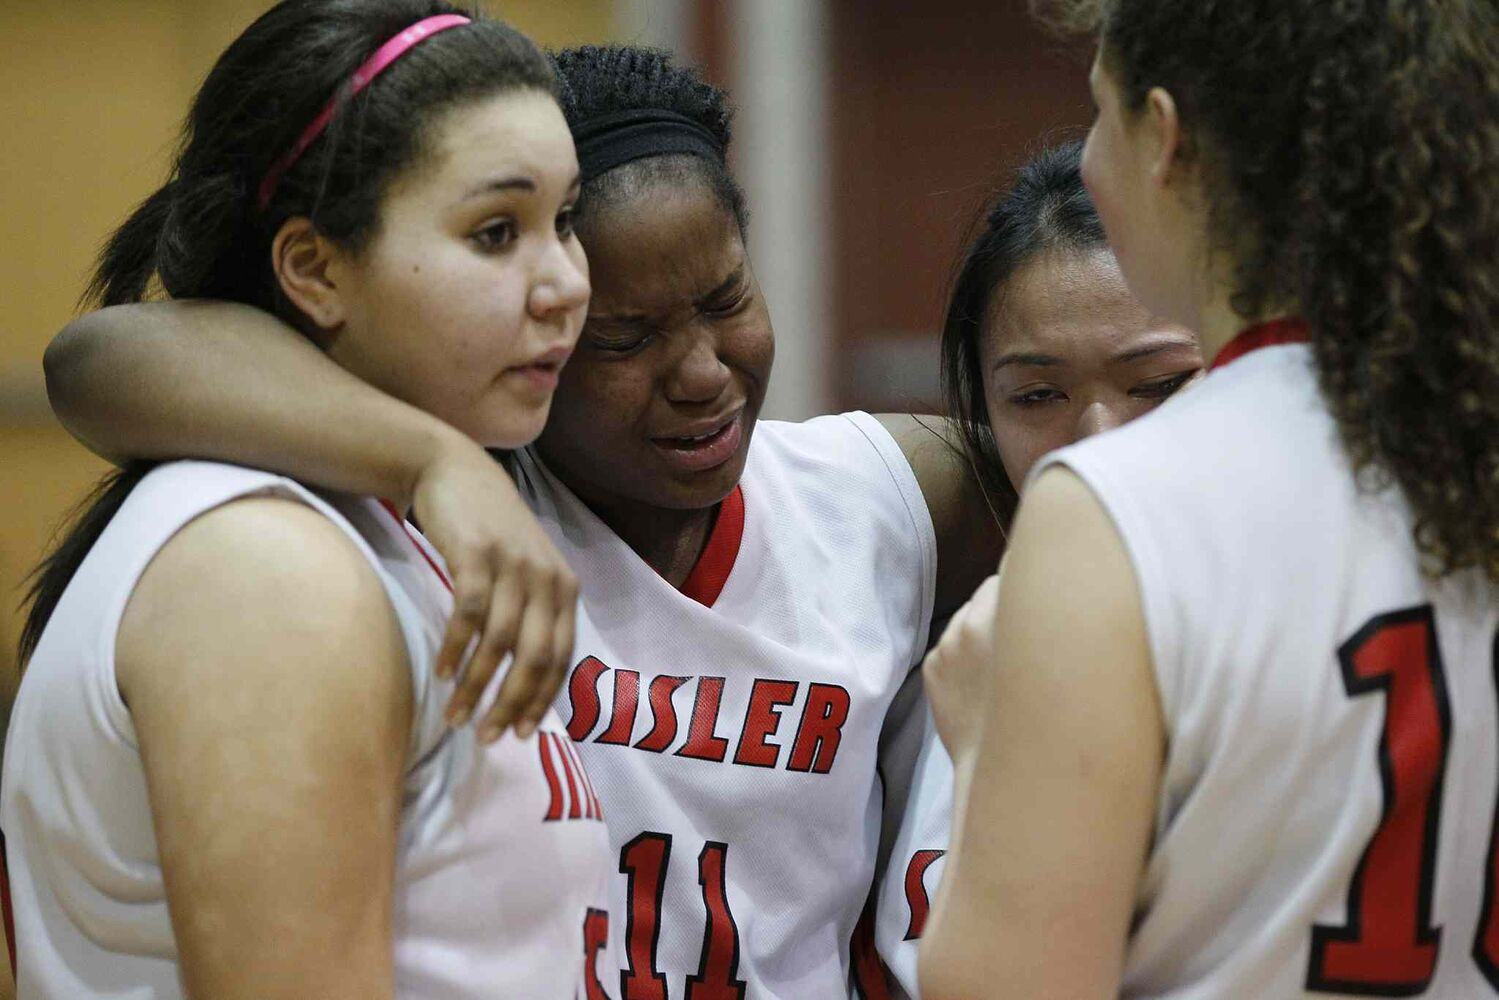 Kyanna Giles (11) cries with teammates after the Sisler Spartans were defeated by the Vincent Massey Trojans in the championship game. It was the Spartans' only loss this season. (JOHN WOODS / WINNIPEG FREE PRESS)